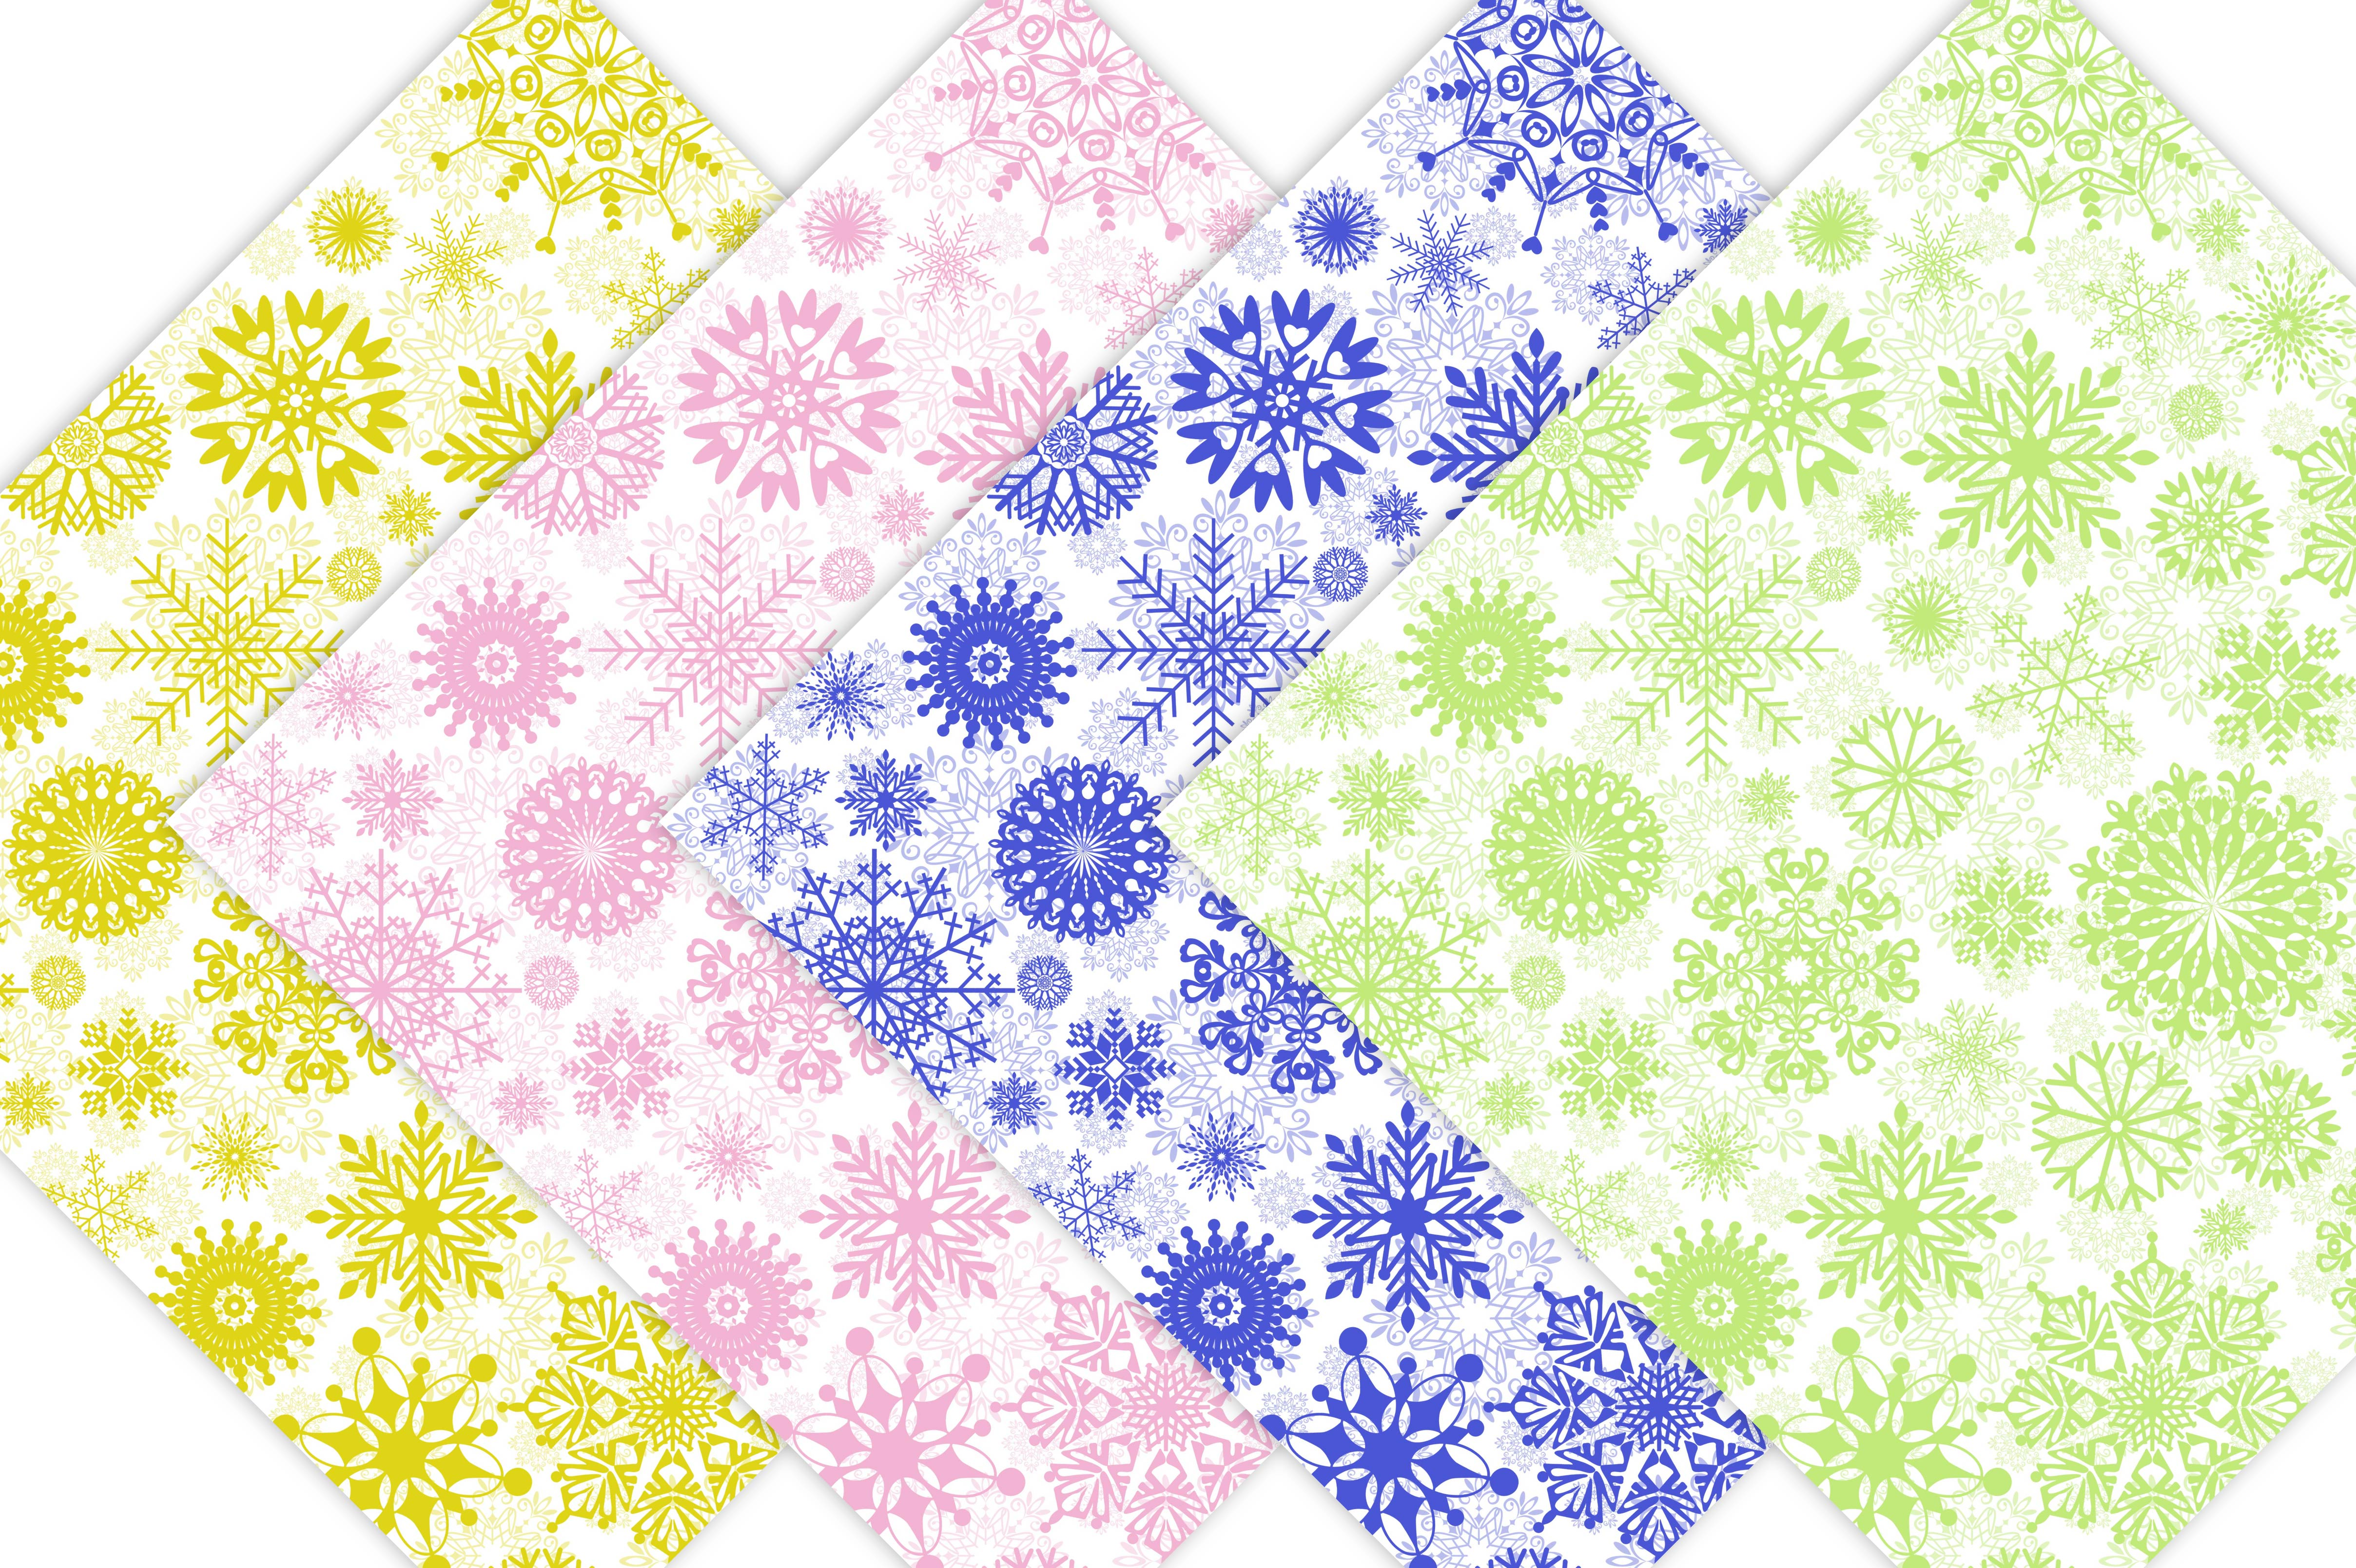 Winter Digital Paper Pack - Snowflake Patterns example image 5